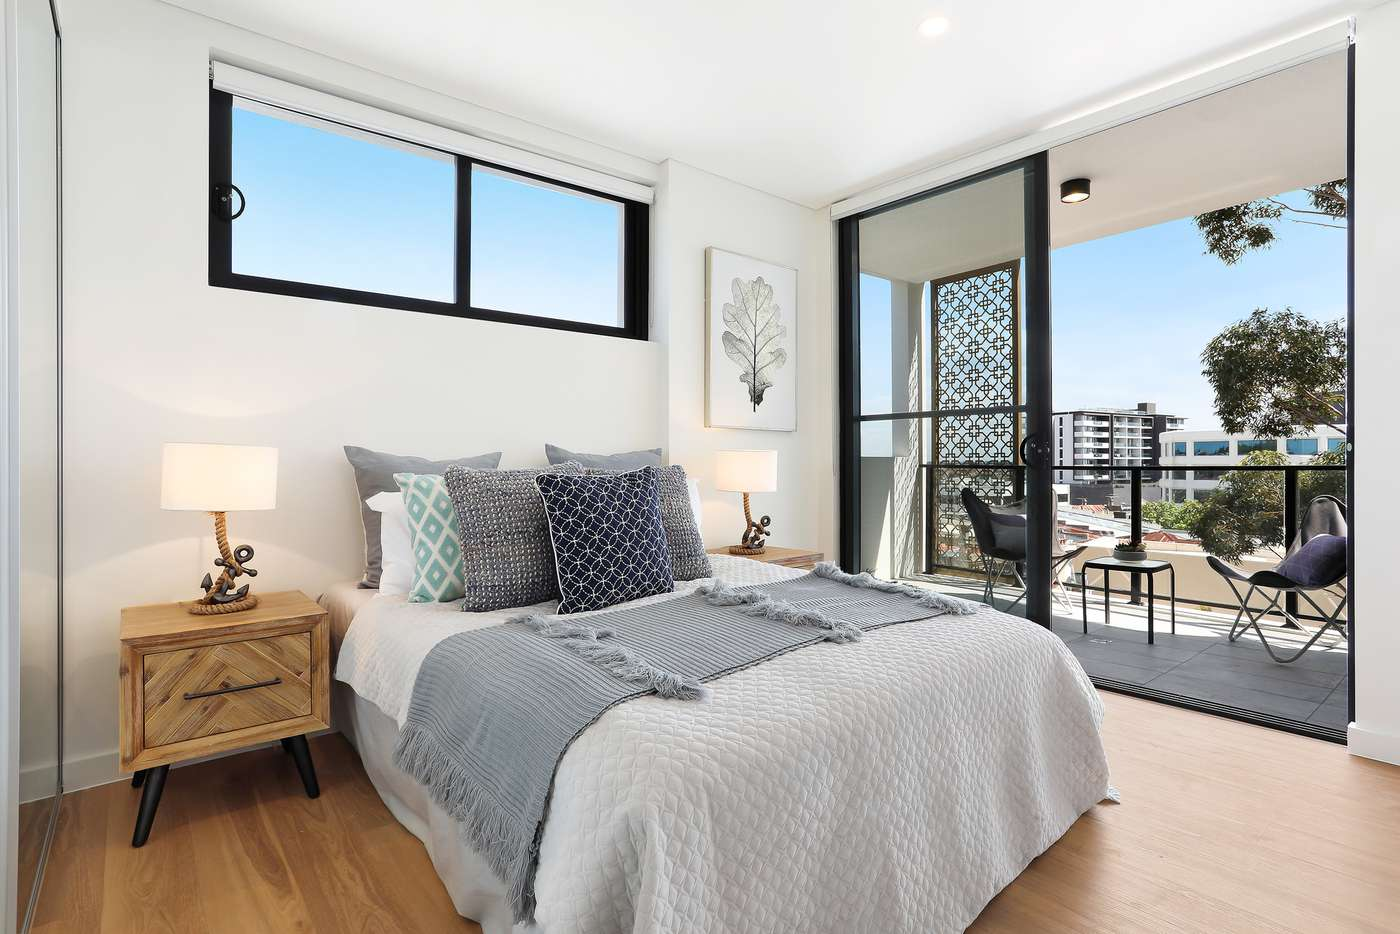 Fifth view of Homely apartment listing, 501/2 Murrell Street, Ashfield NSW 2131